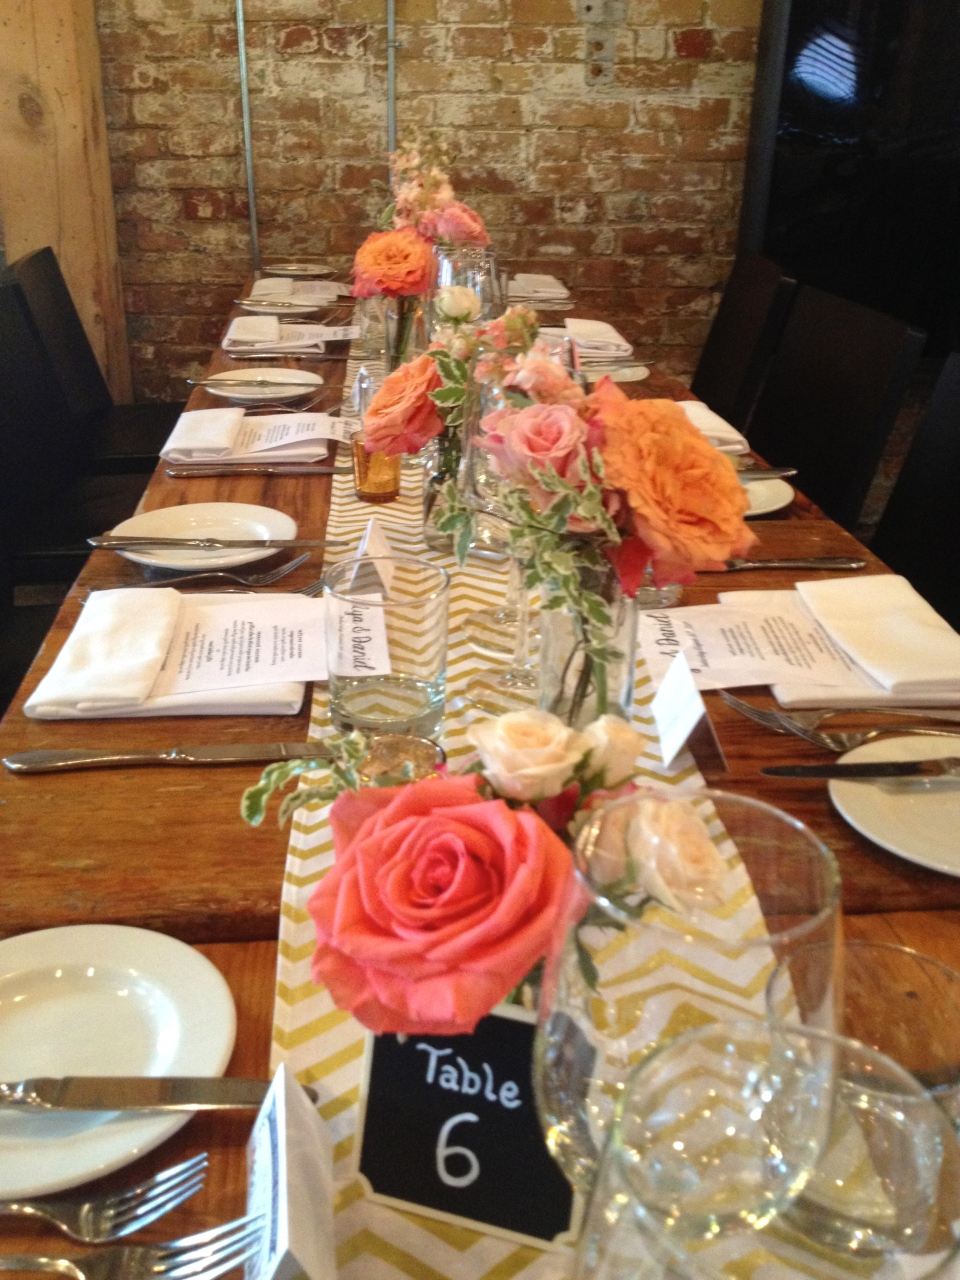 Bud Vases of Roses and Spray Roses Line Long Guest Tables at Archeo